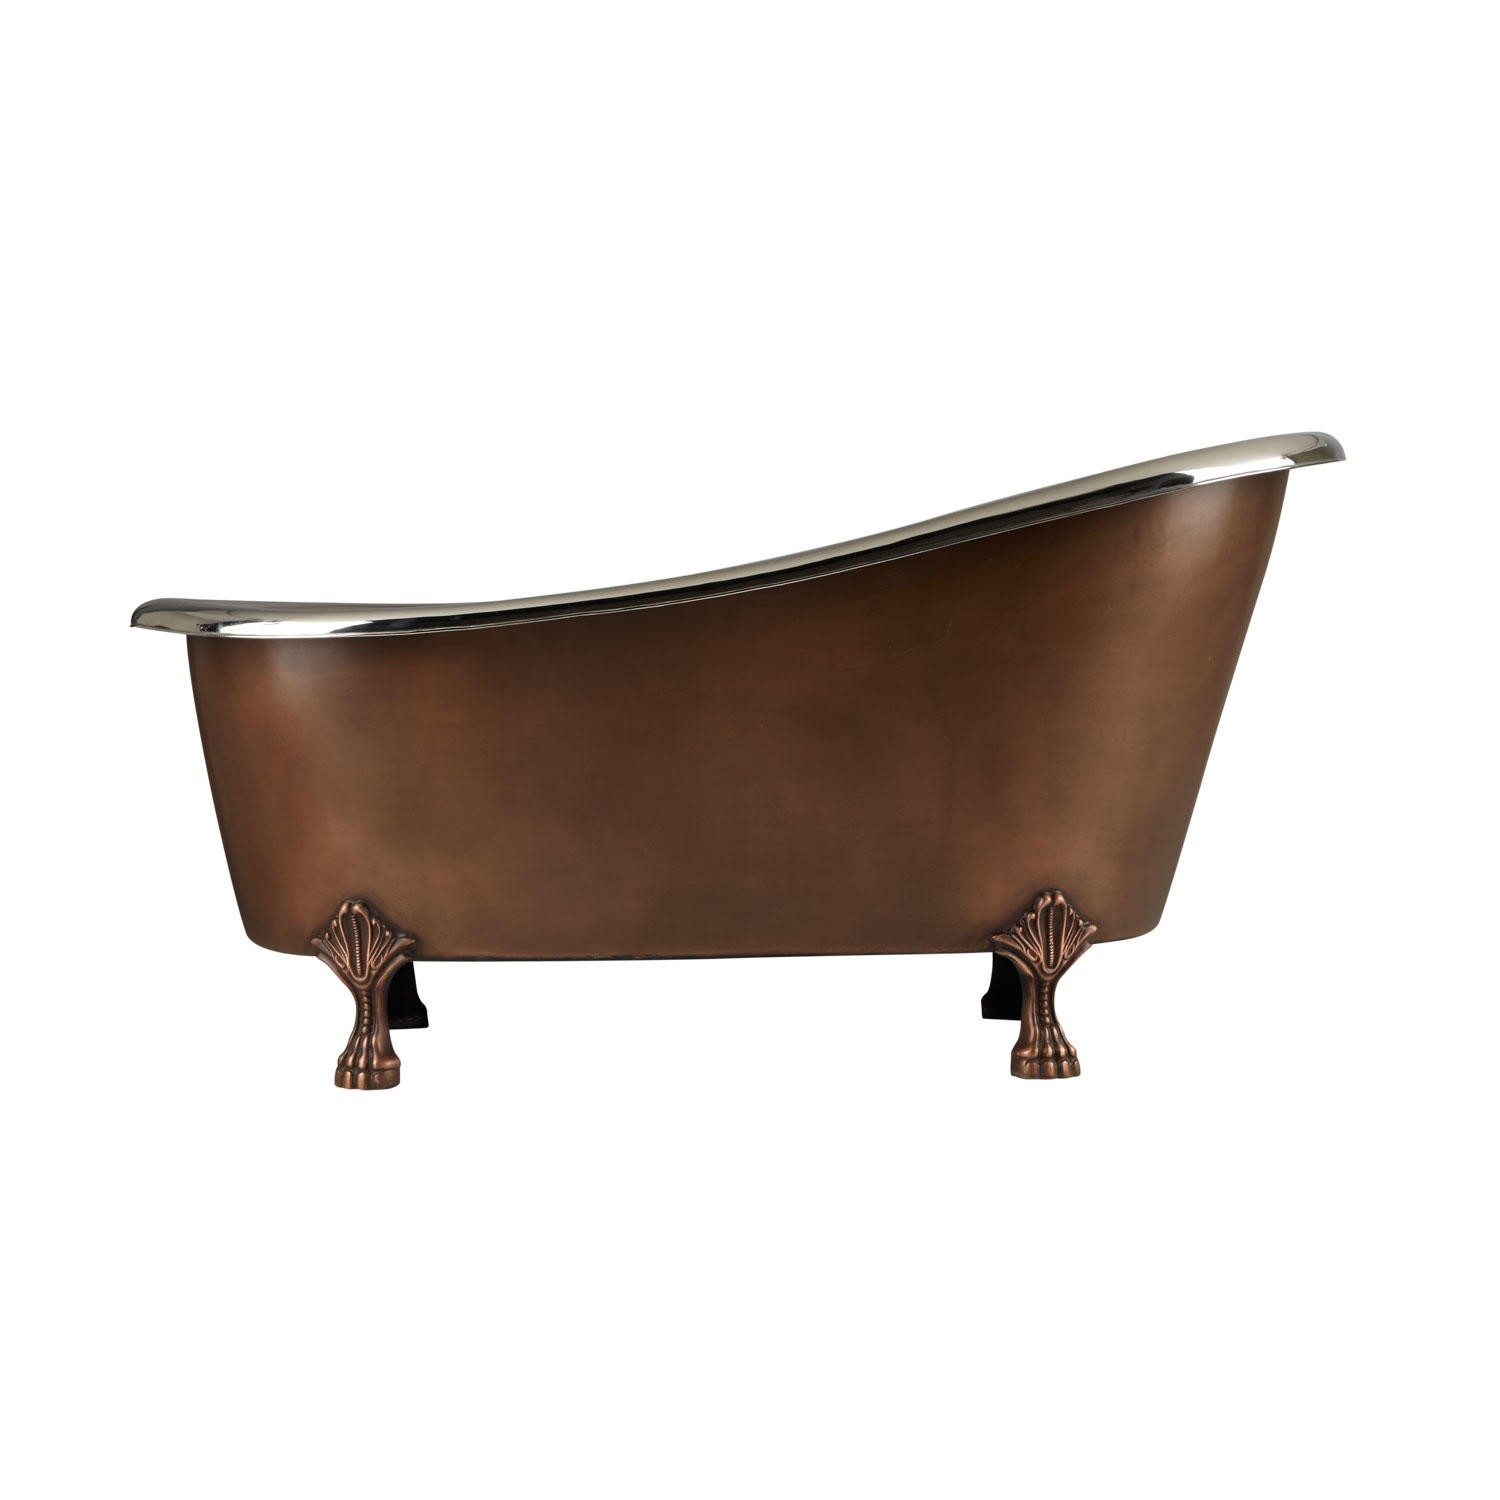 Slipper Tub - Coppersmith Creations